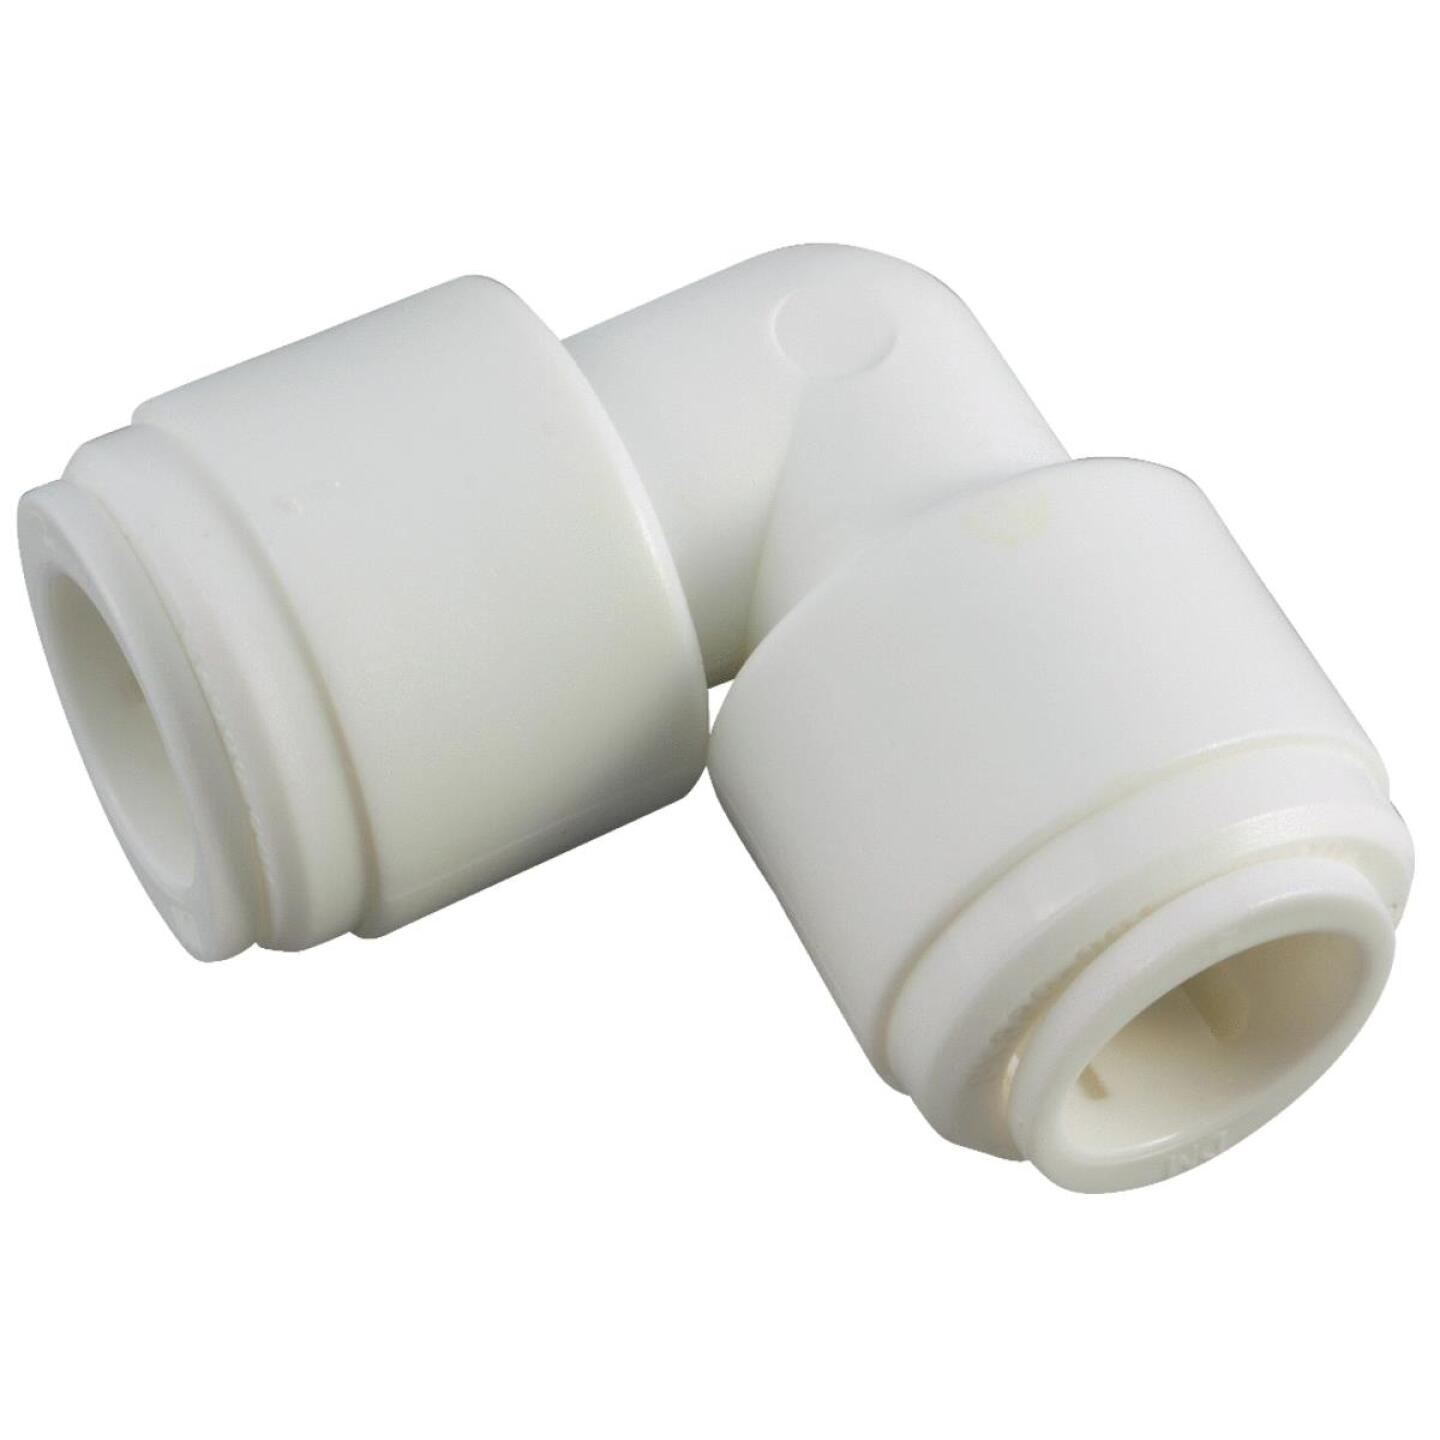 Anderson Metals 3/8 In. x 3/8 In. Push-in Plastic Elbow Image 1